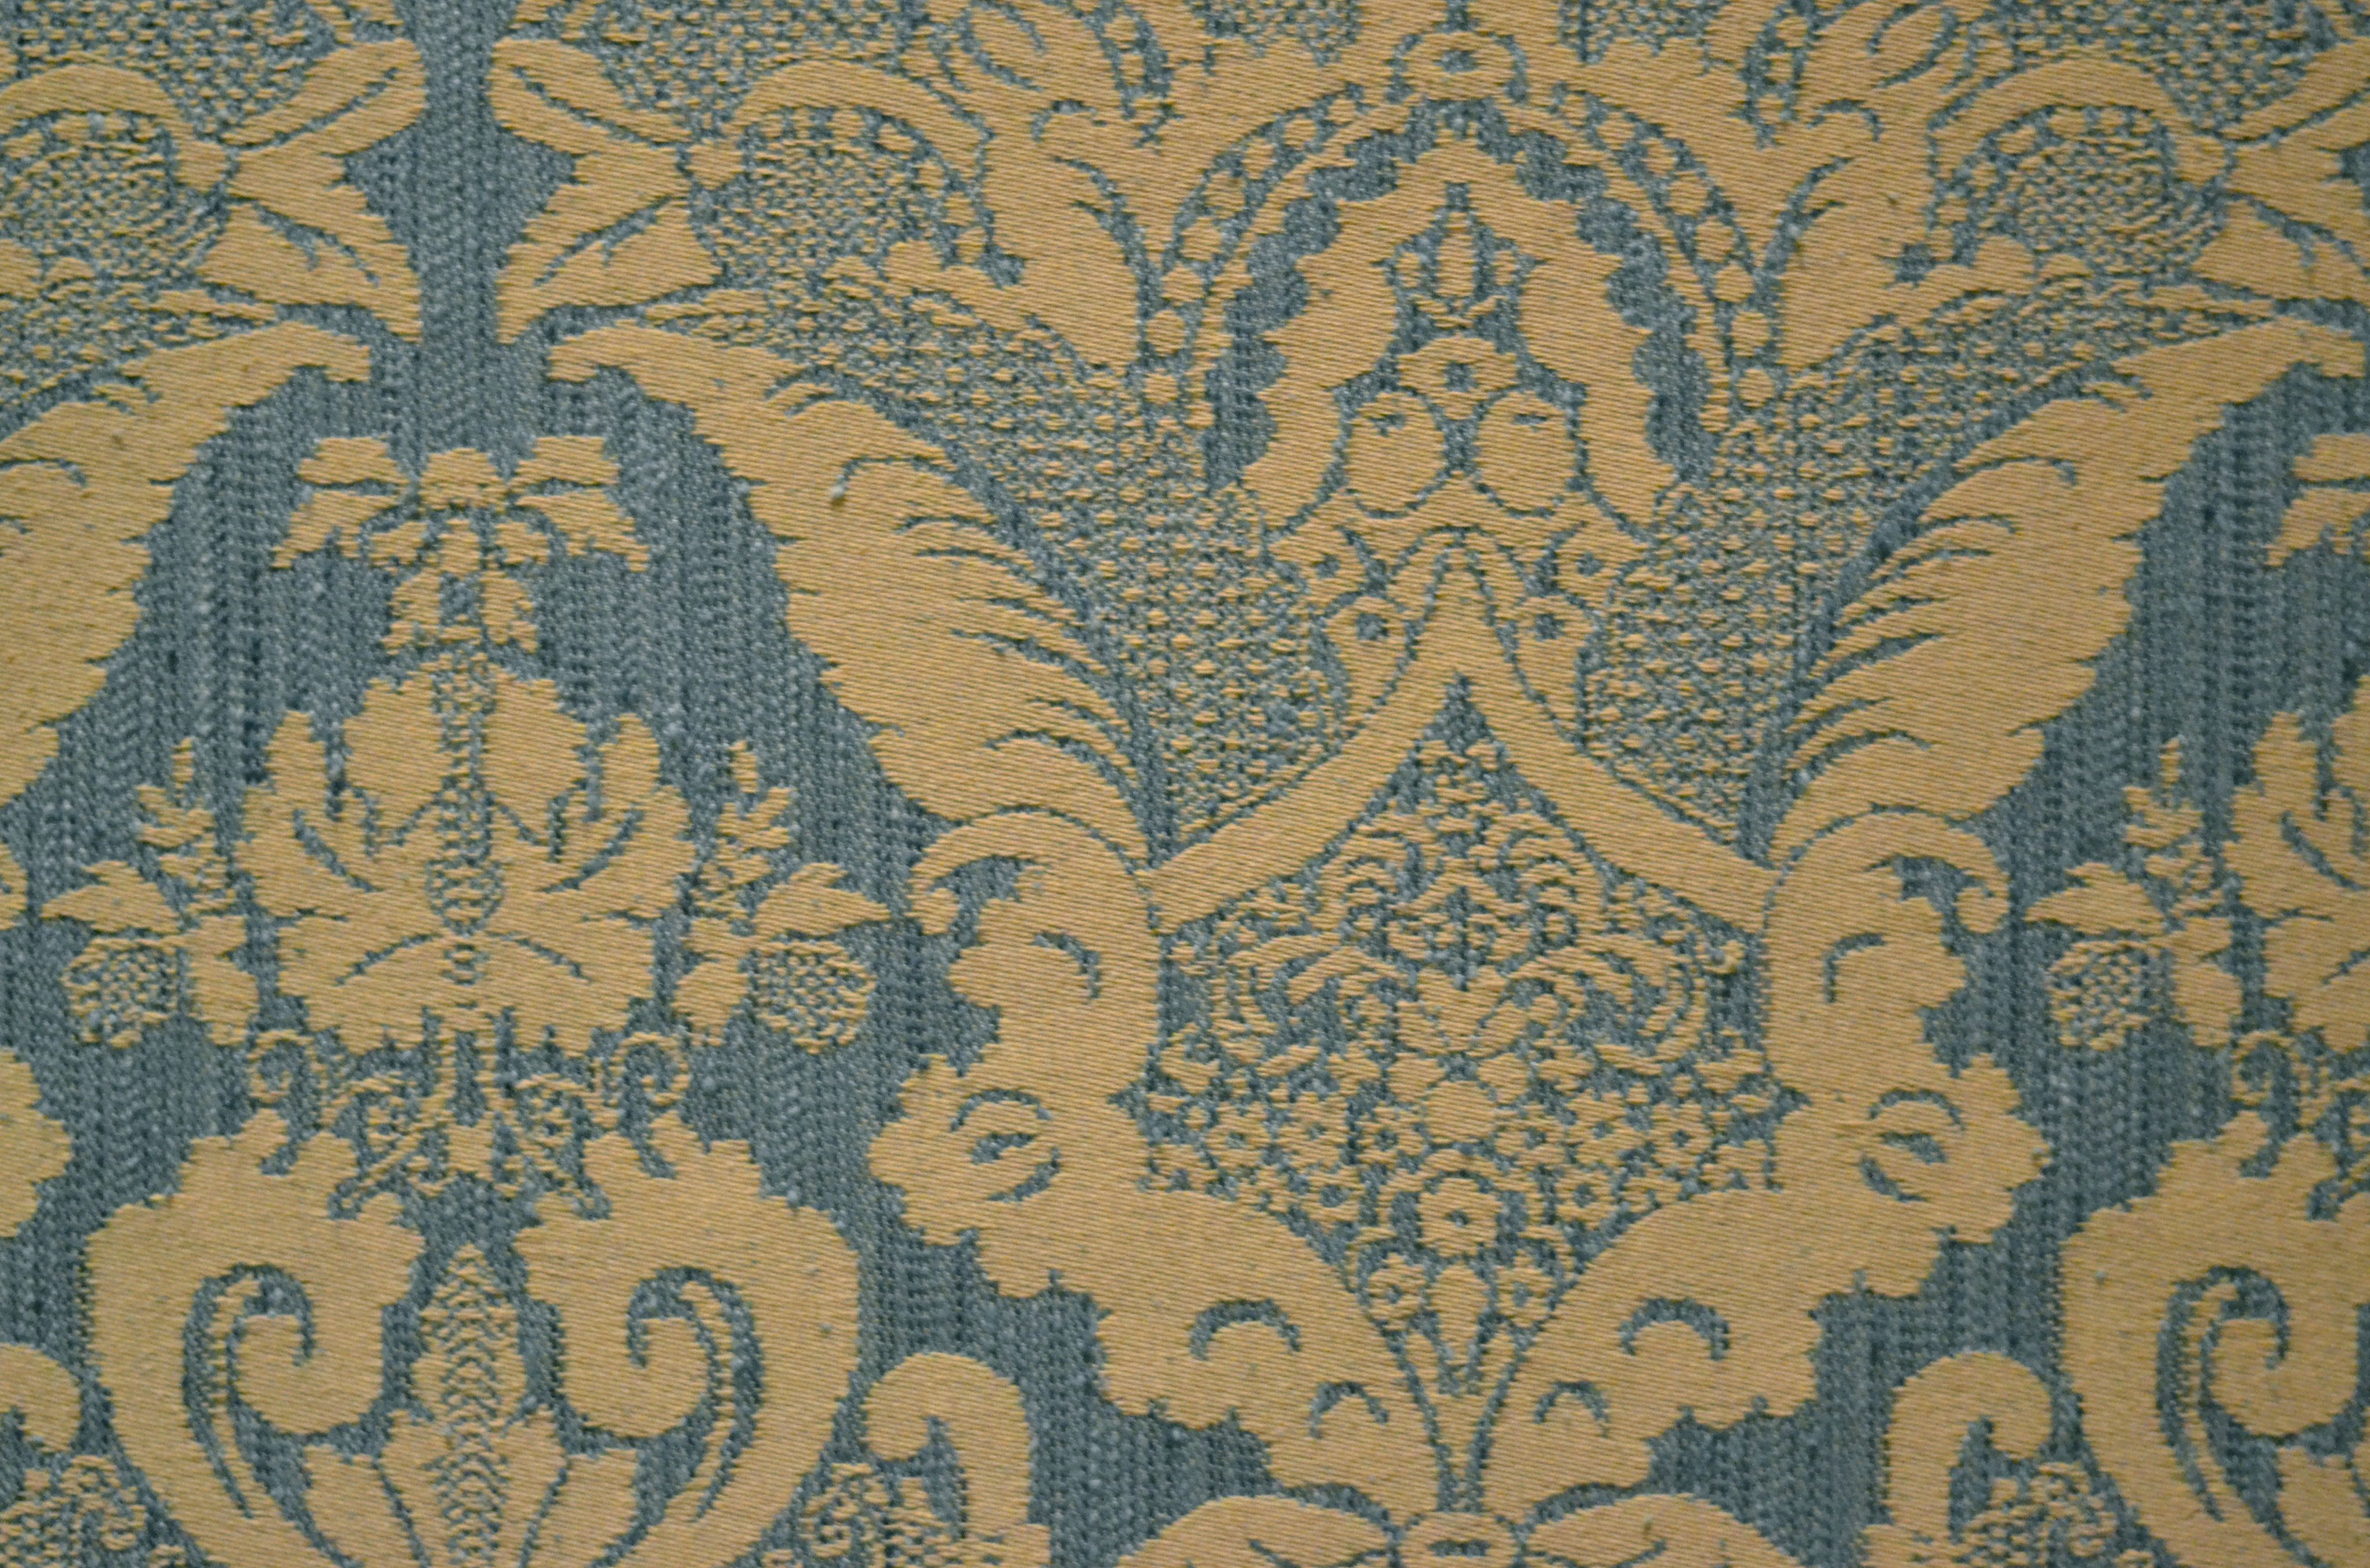 French Baroque Woven Wall Covering At Chateau De Chambord Loire Valley France